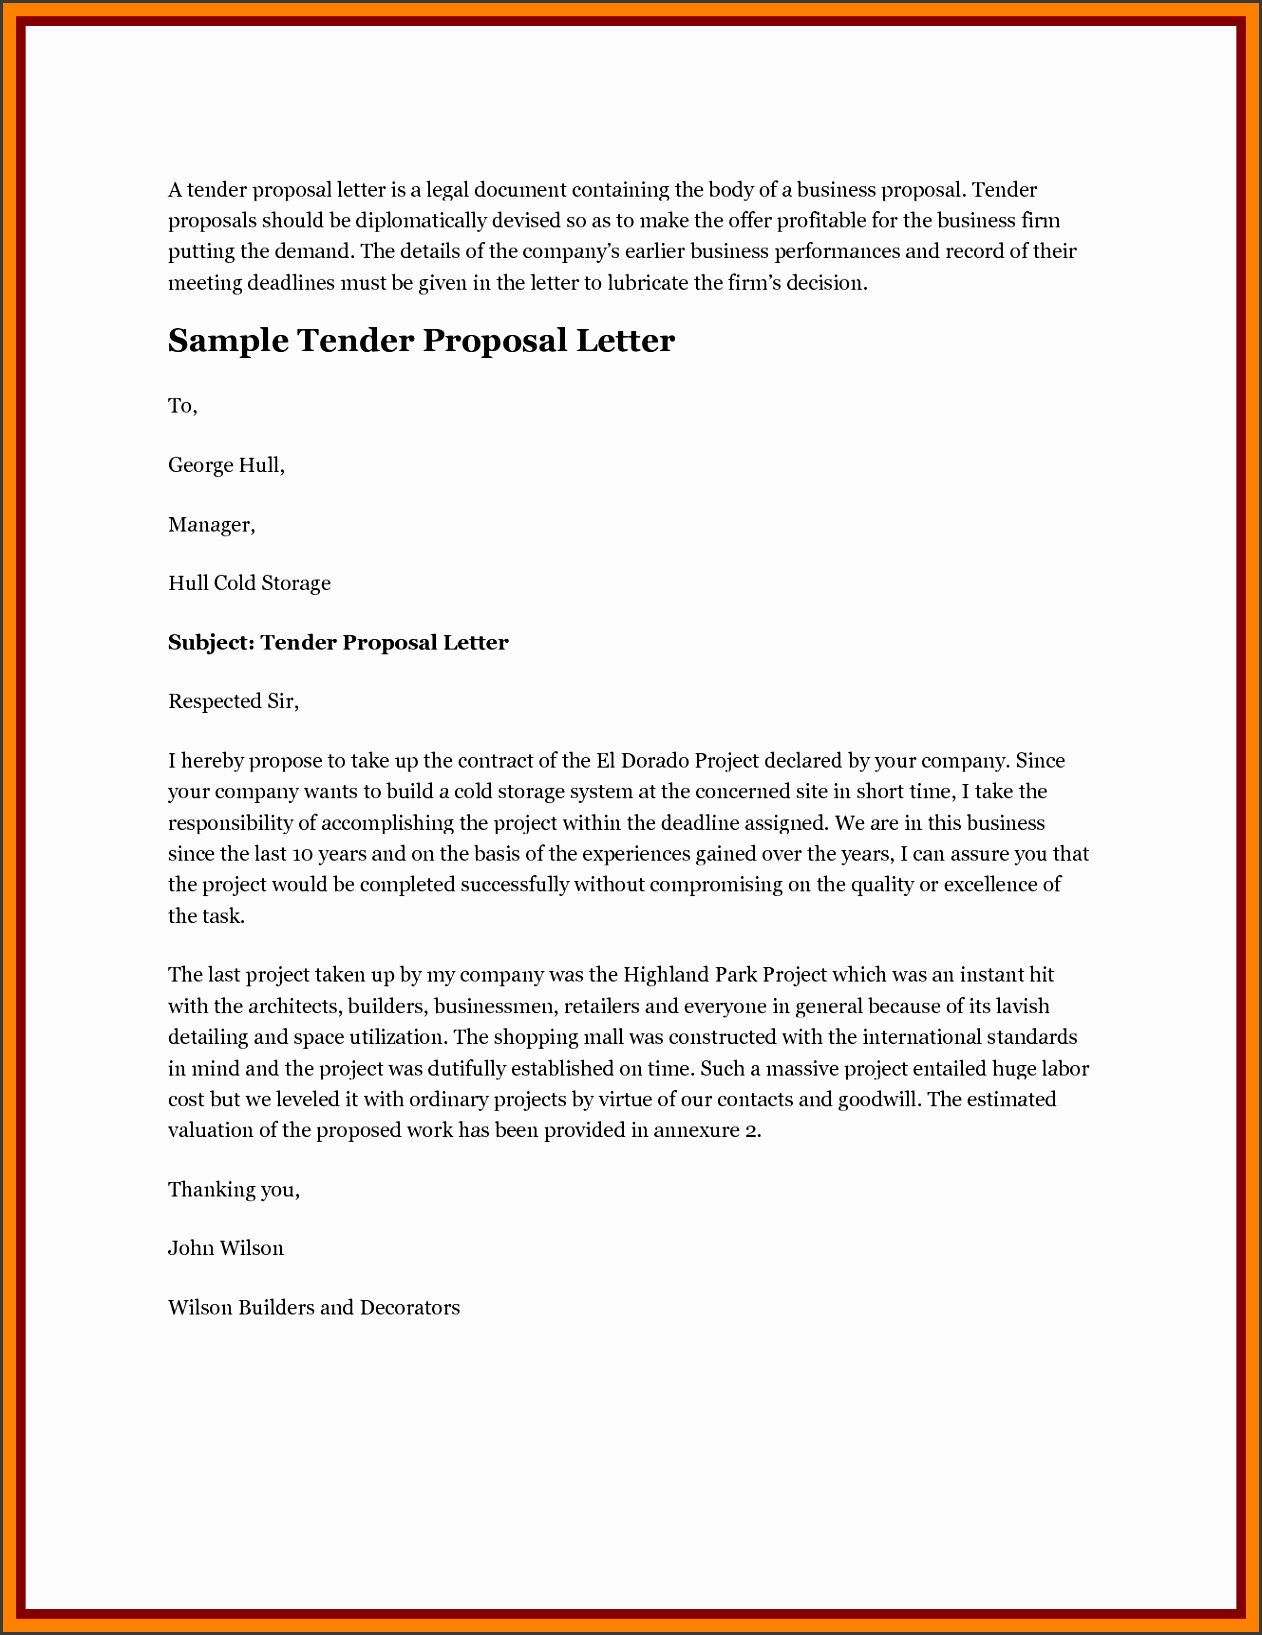 tender proposal letter sample lication for tender proposal tender sample